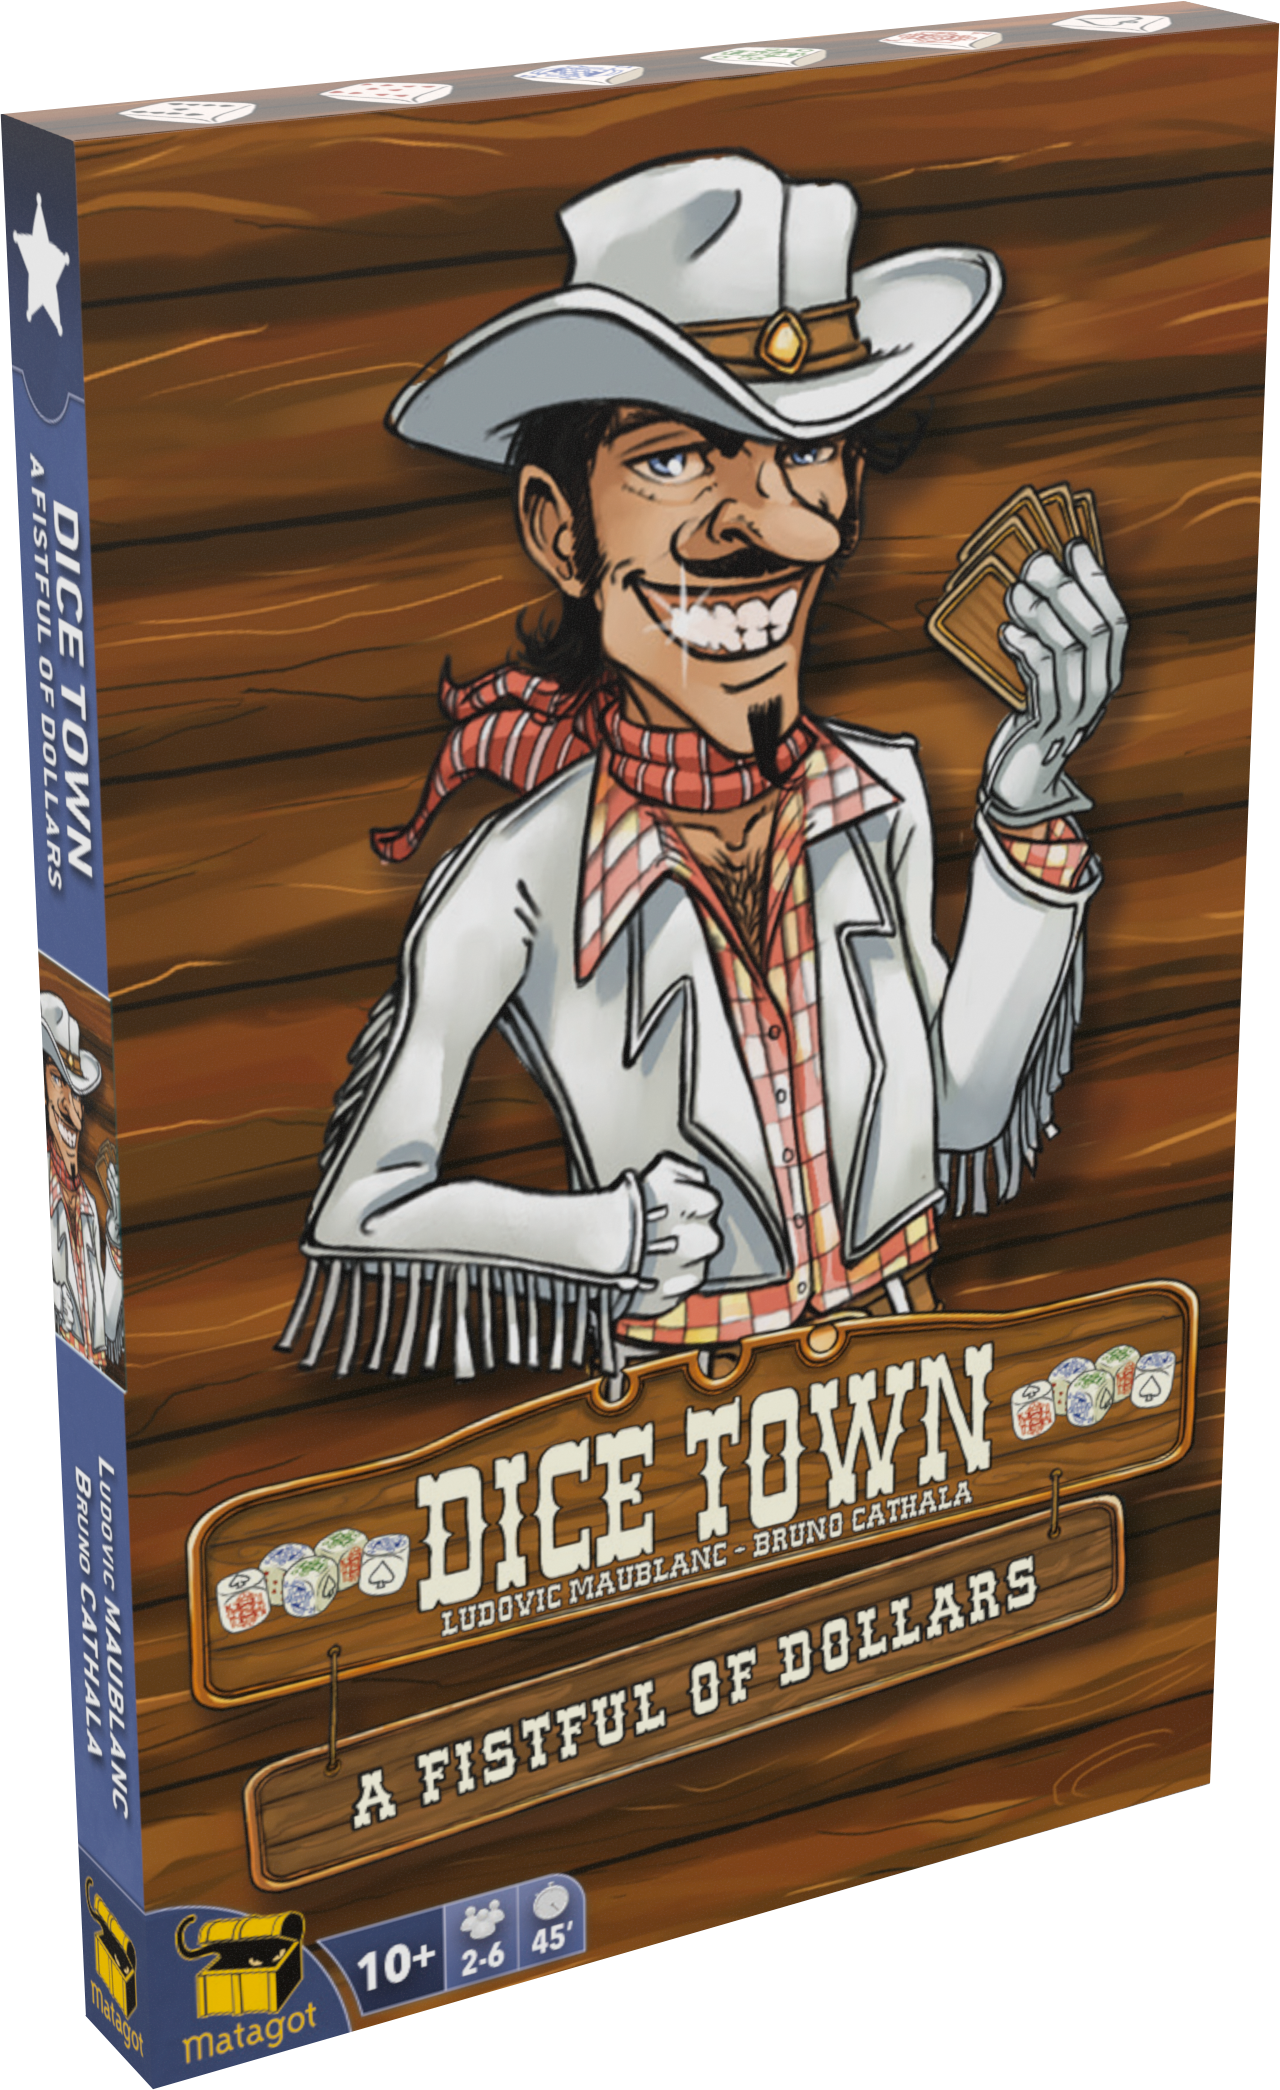 DICE TOWN - A fistful of dollars